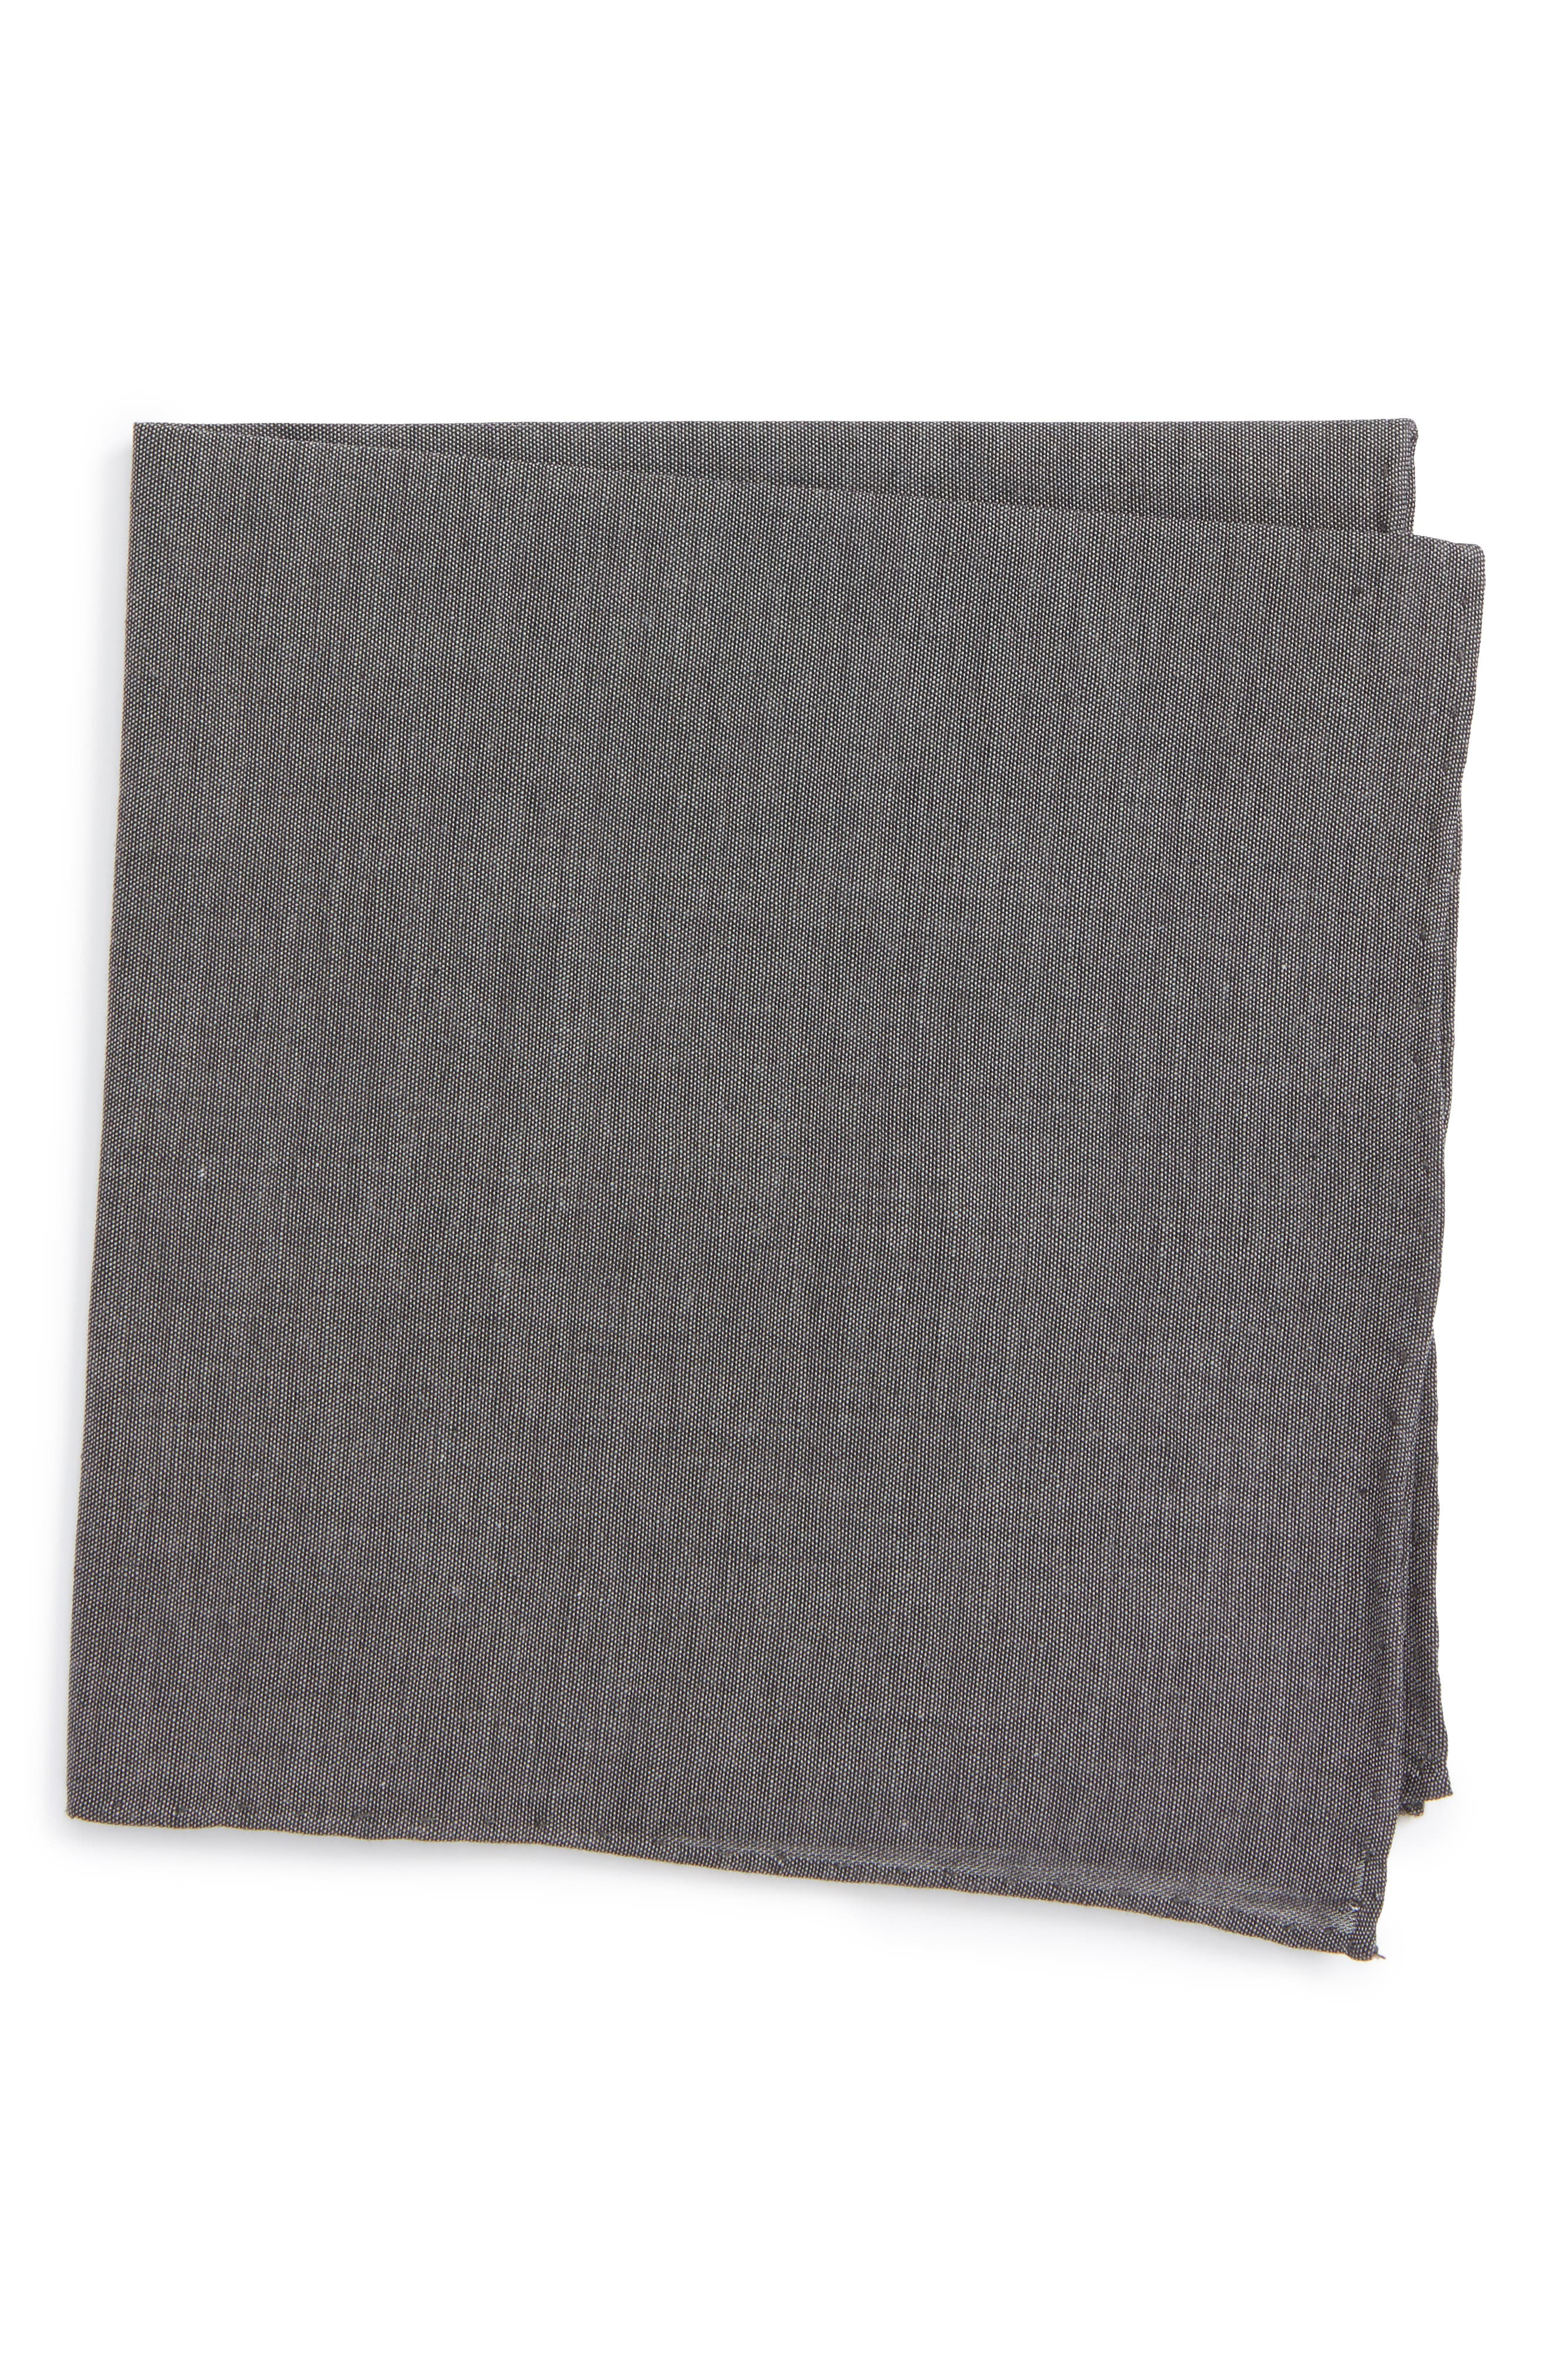 The Tie Bar Chambray CottonPocket Square